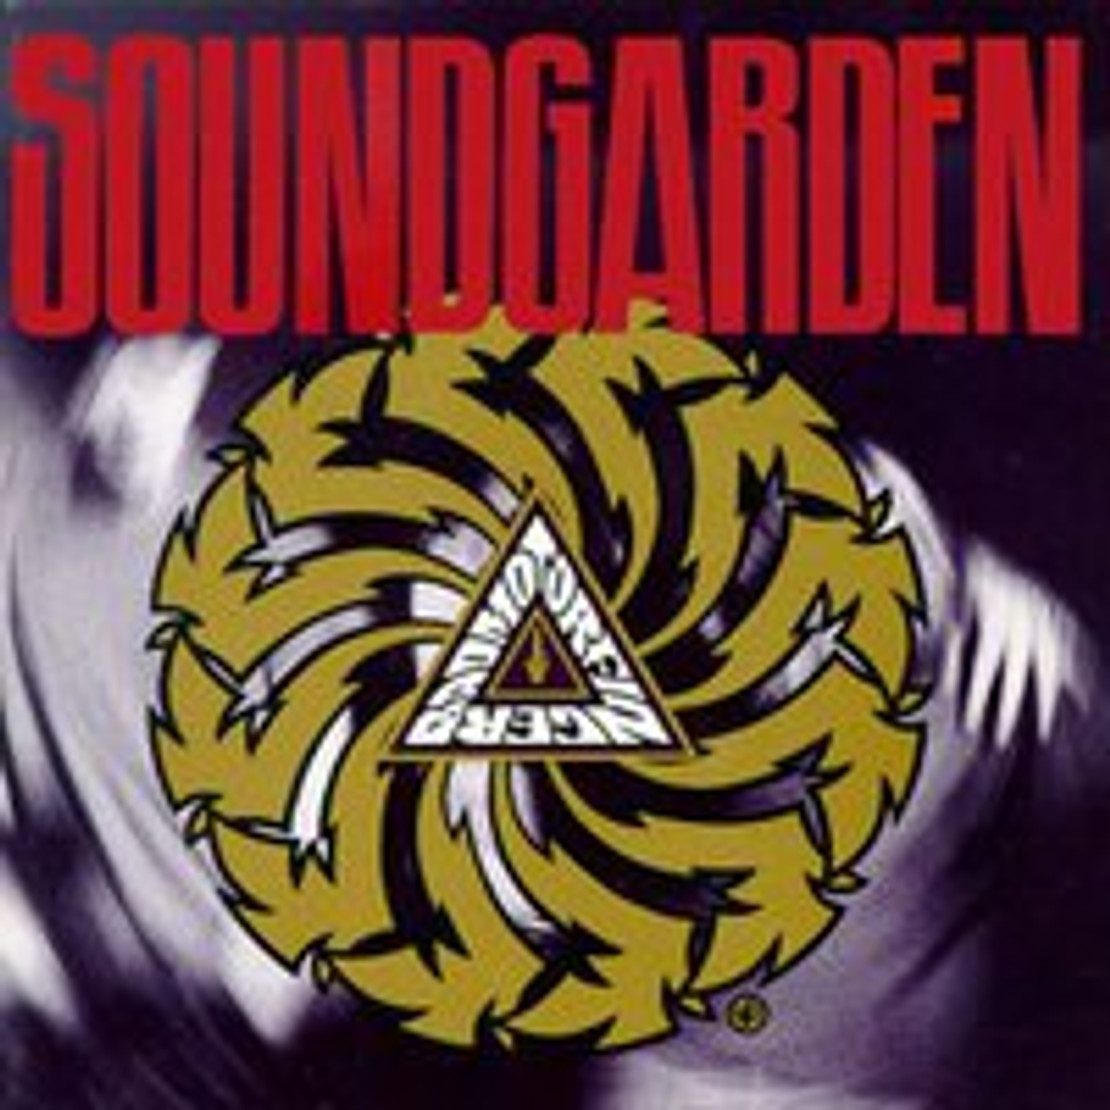 Soundgarden's Badmotorfinger Turns 25